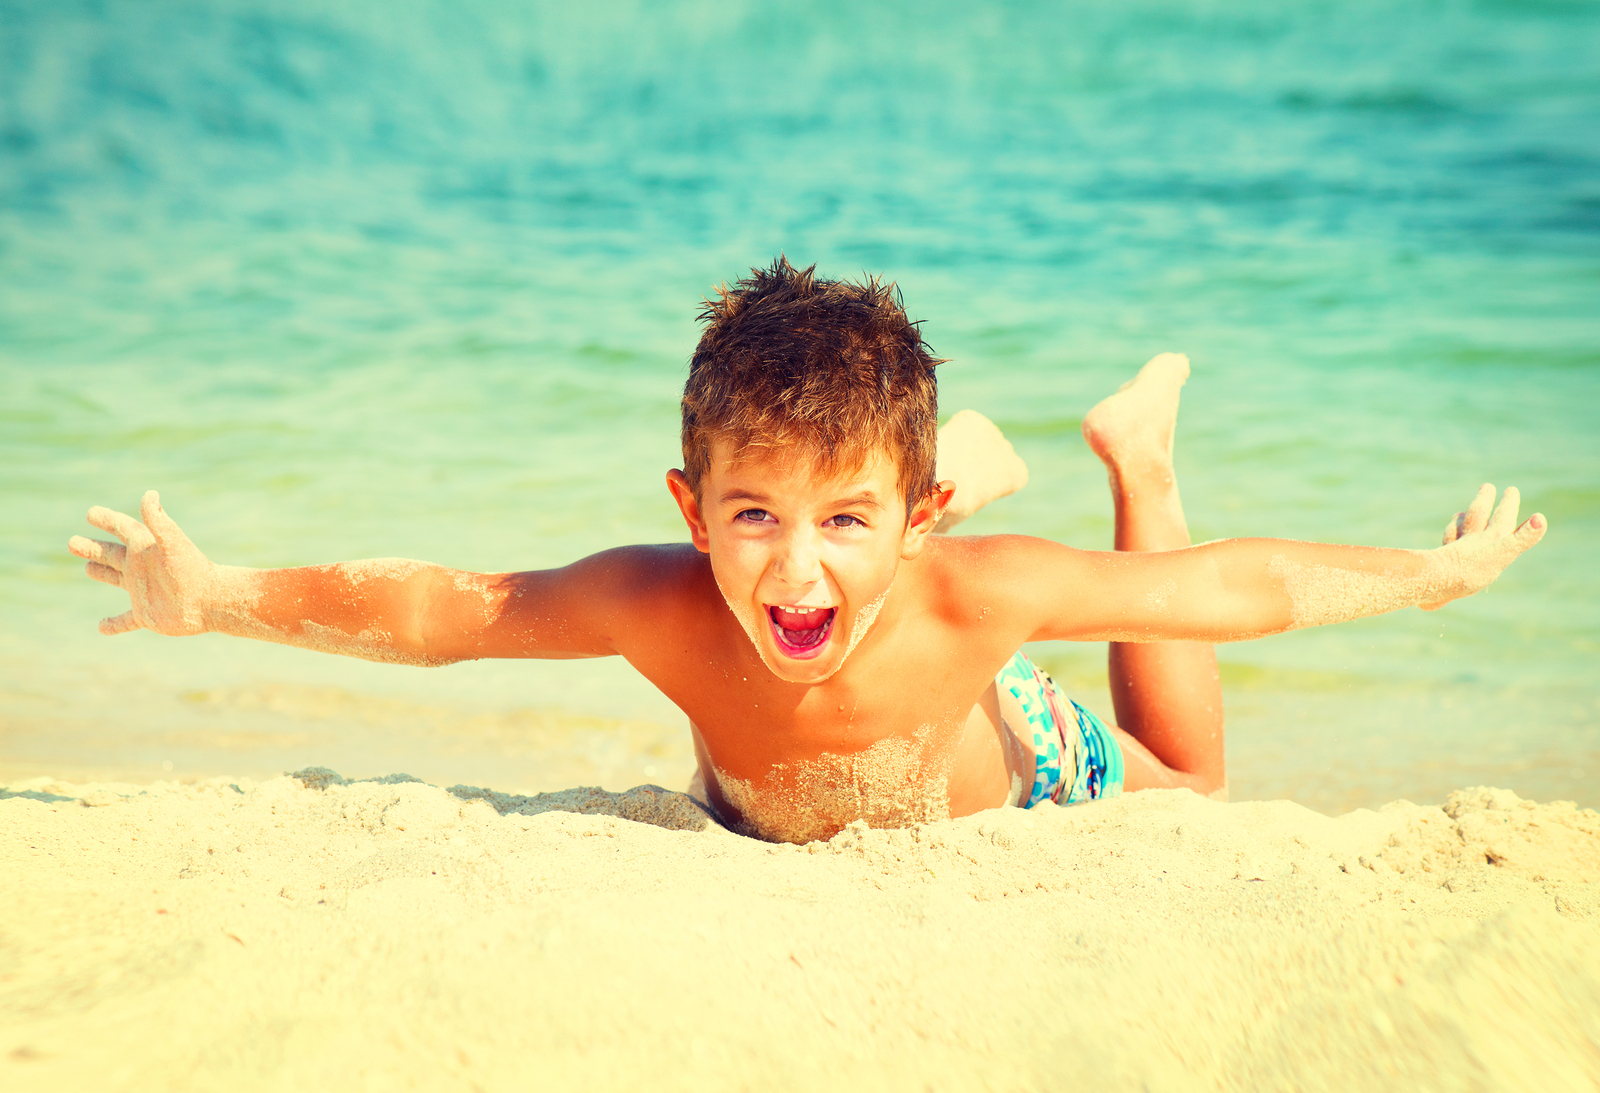 A recent survey revealed that nearly a third of parents believe that darker suntans are healthy for children.